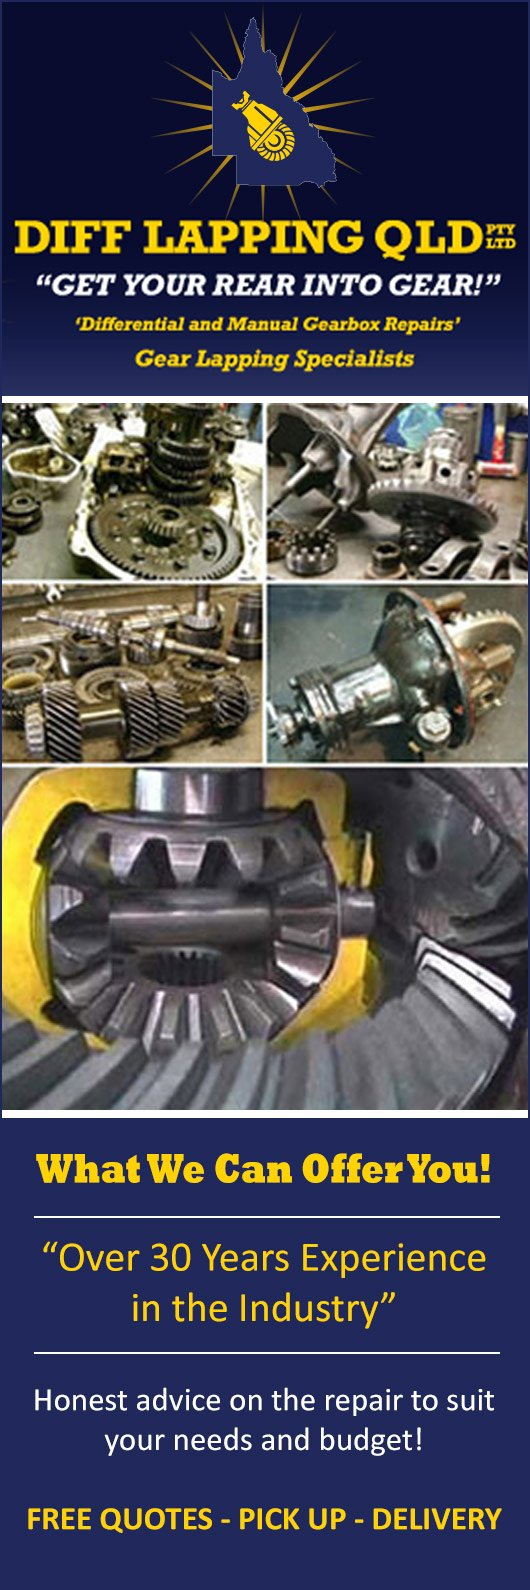 Diff Lapping (QLD) Pty Ltd - Car & Automotive Transmissions